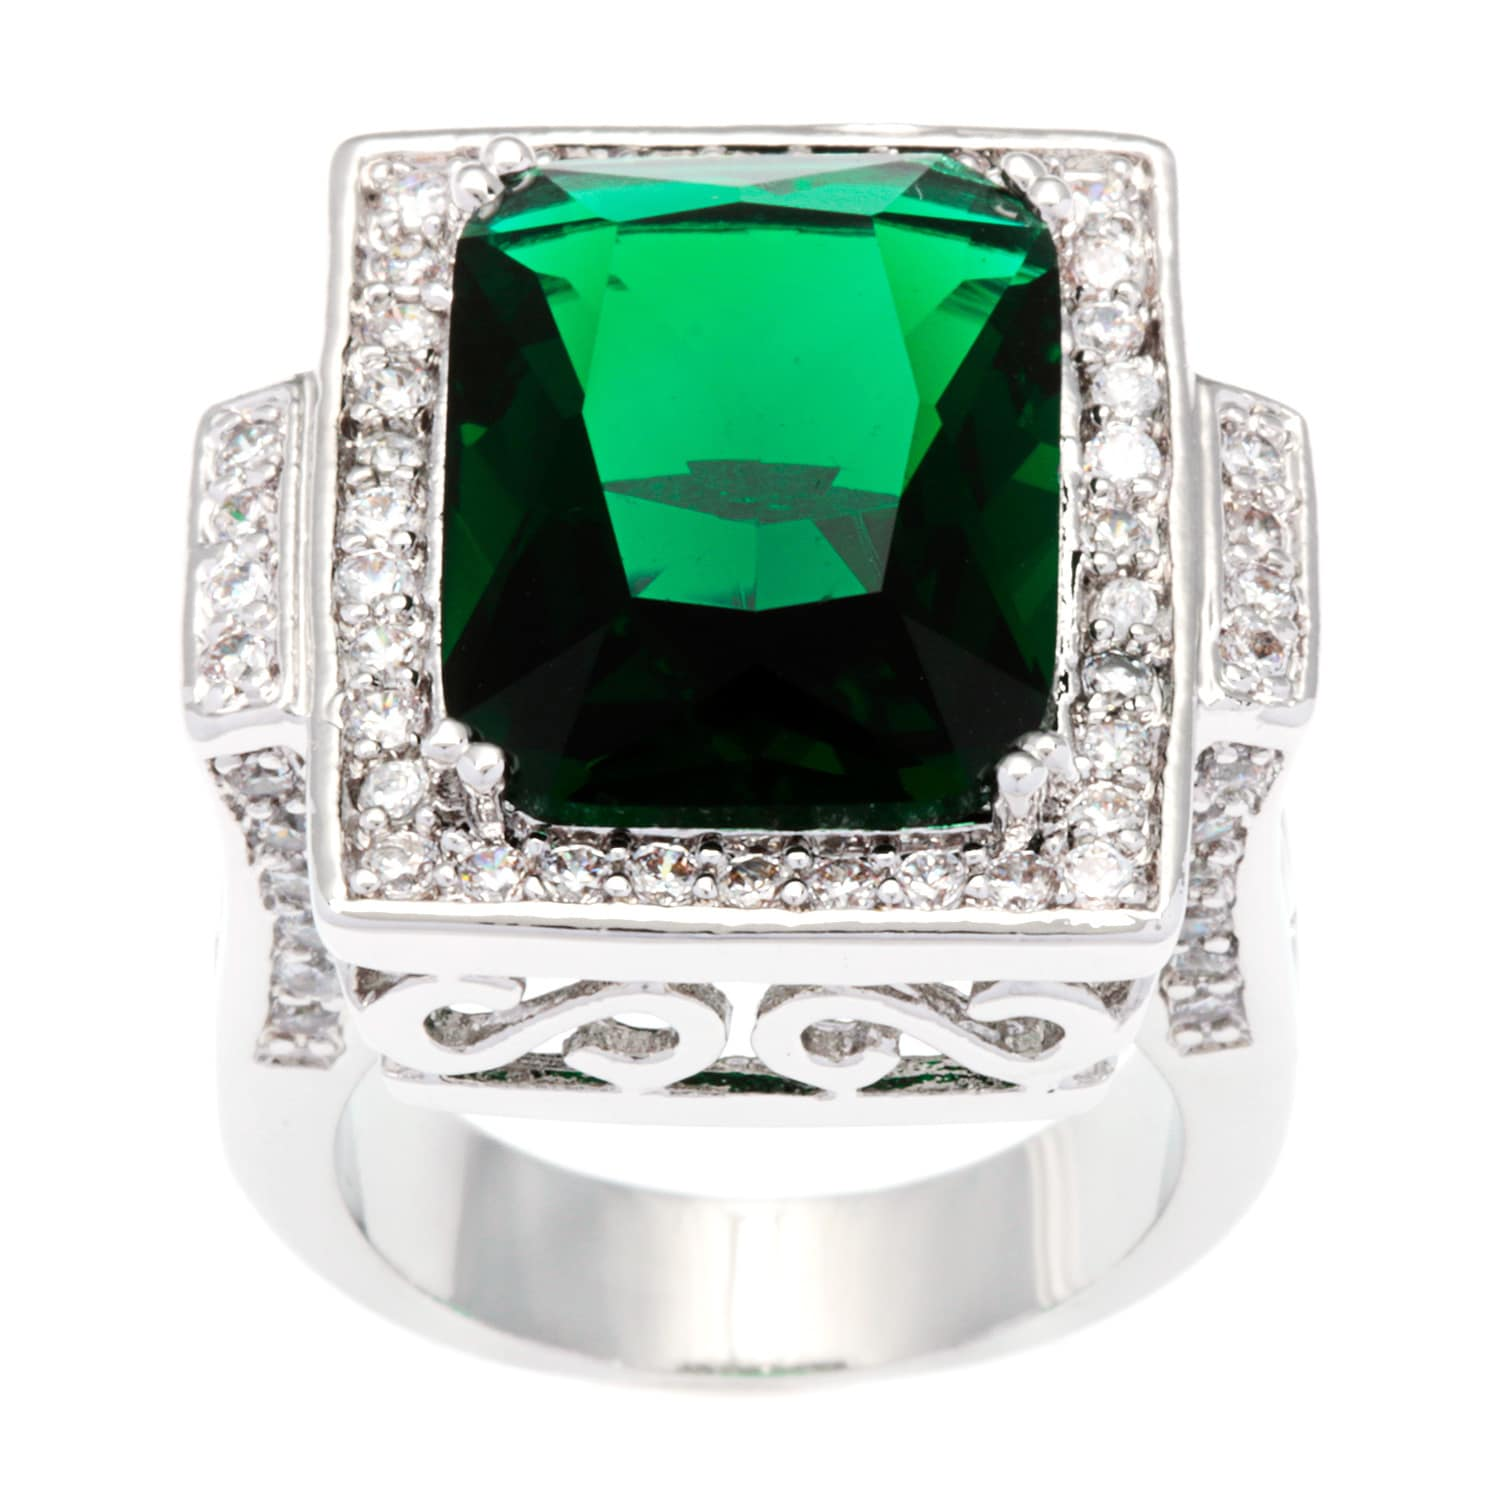 gemstone diamond i emerald cut h shipping cushion jewelry free product gold today overstock tdw white watches earrings